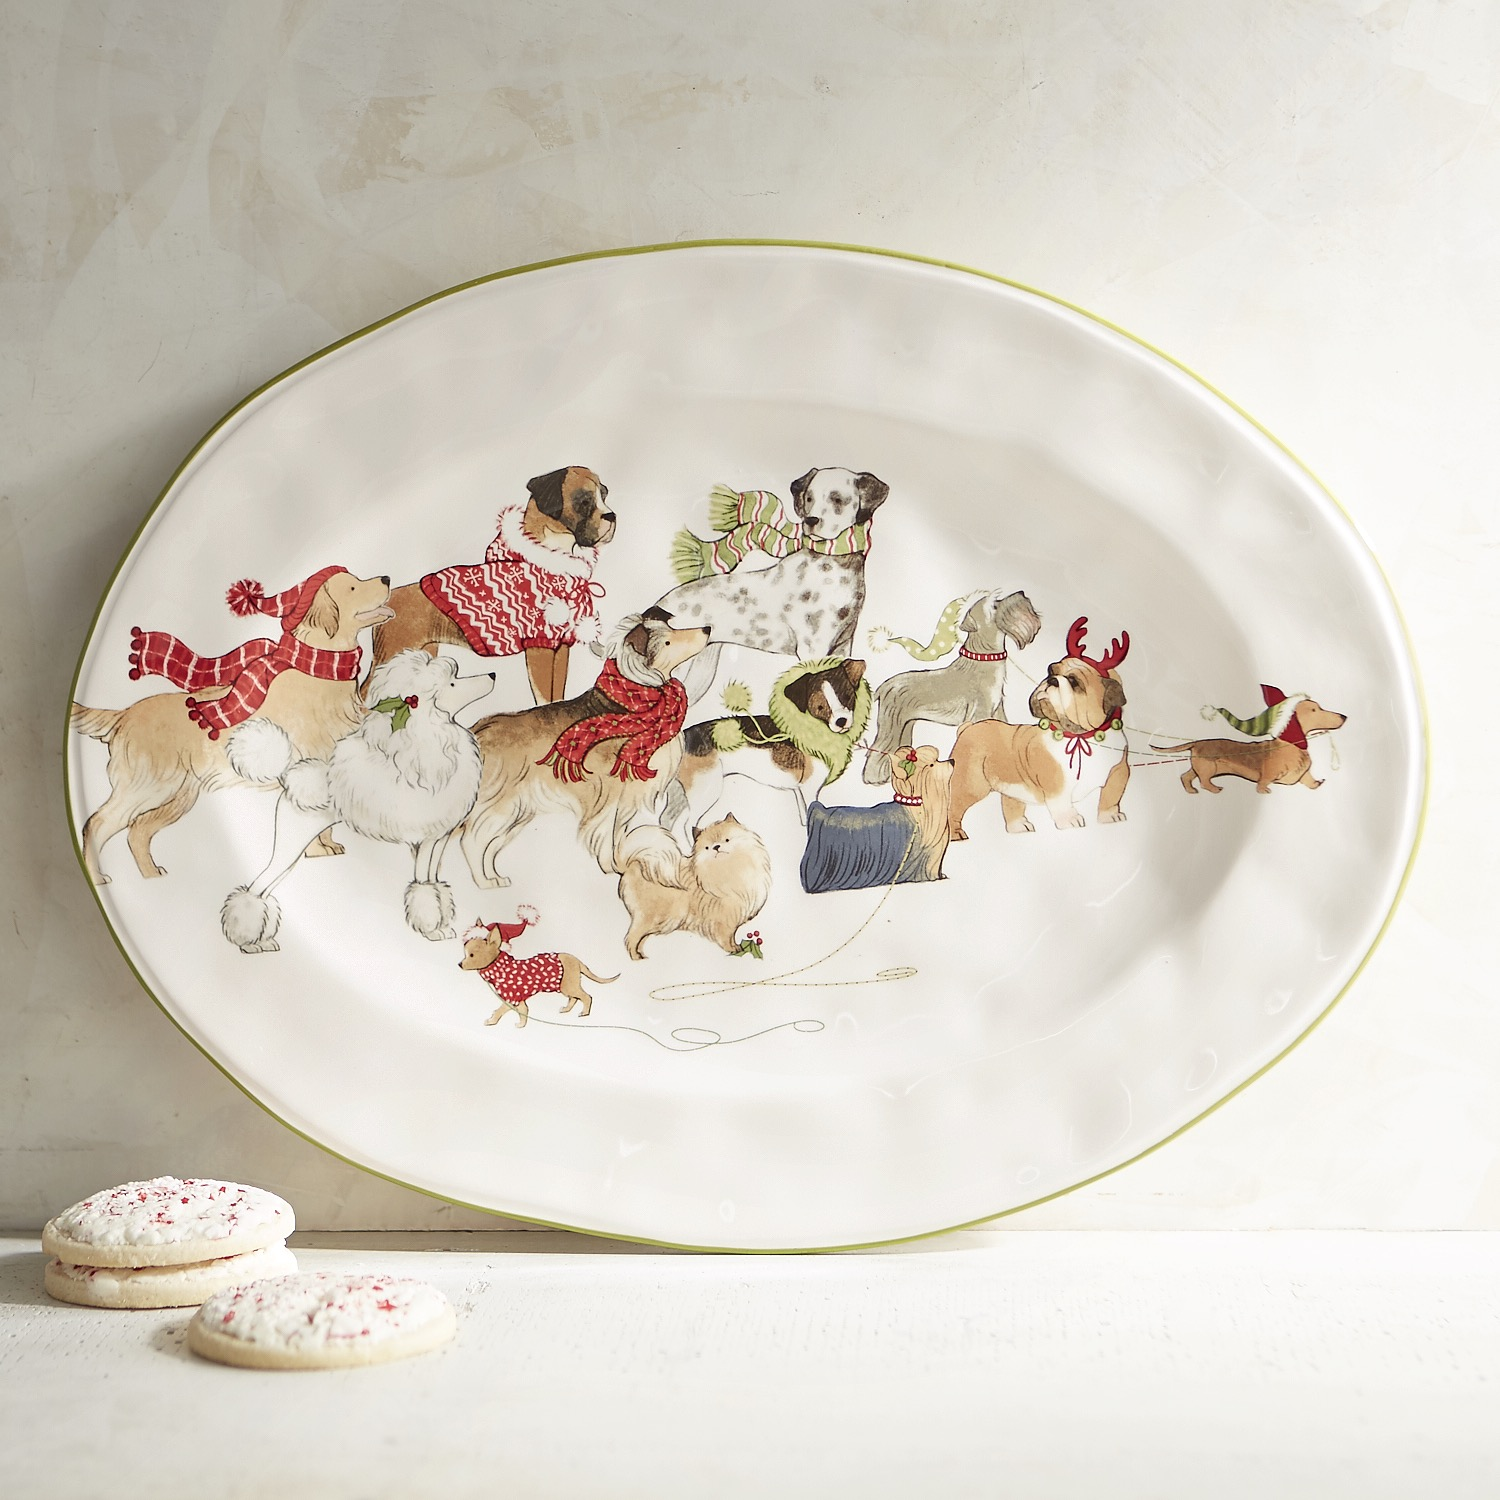 Park Avenue Puppies™ Oval Serving Platter